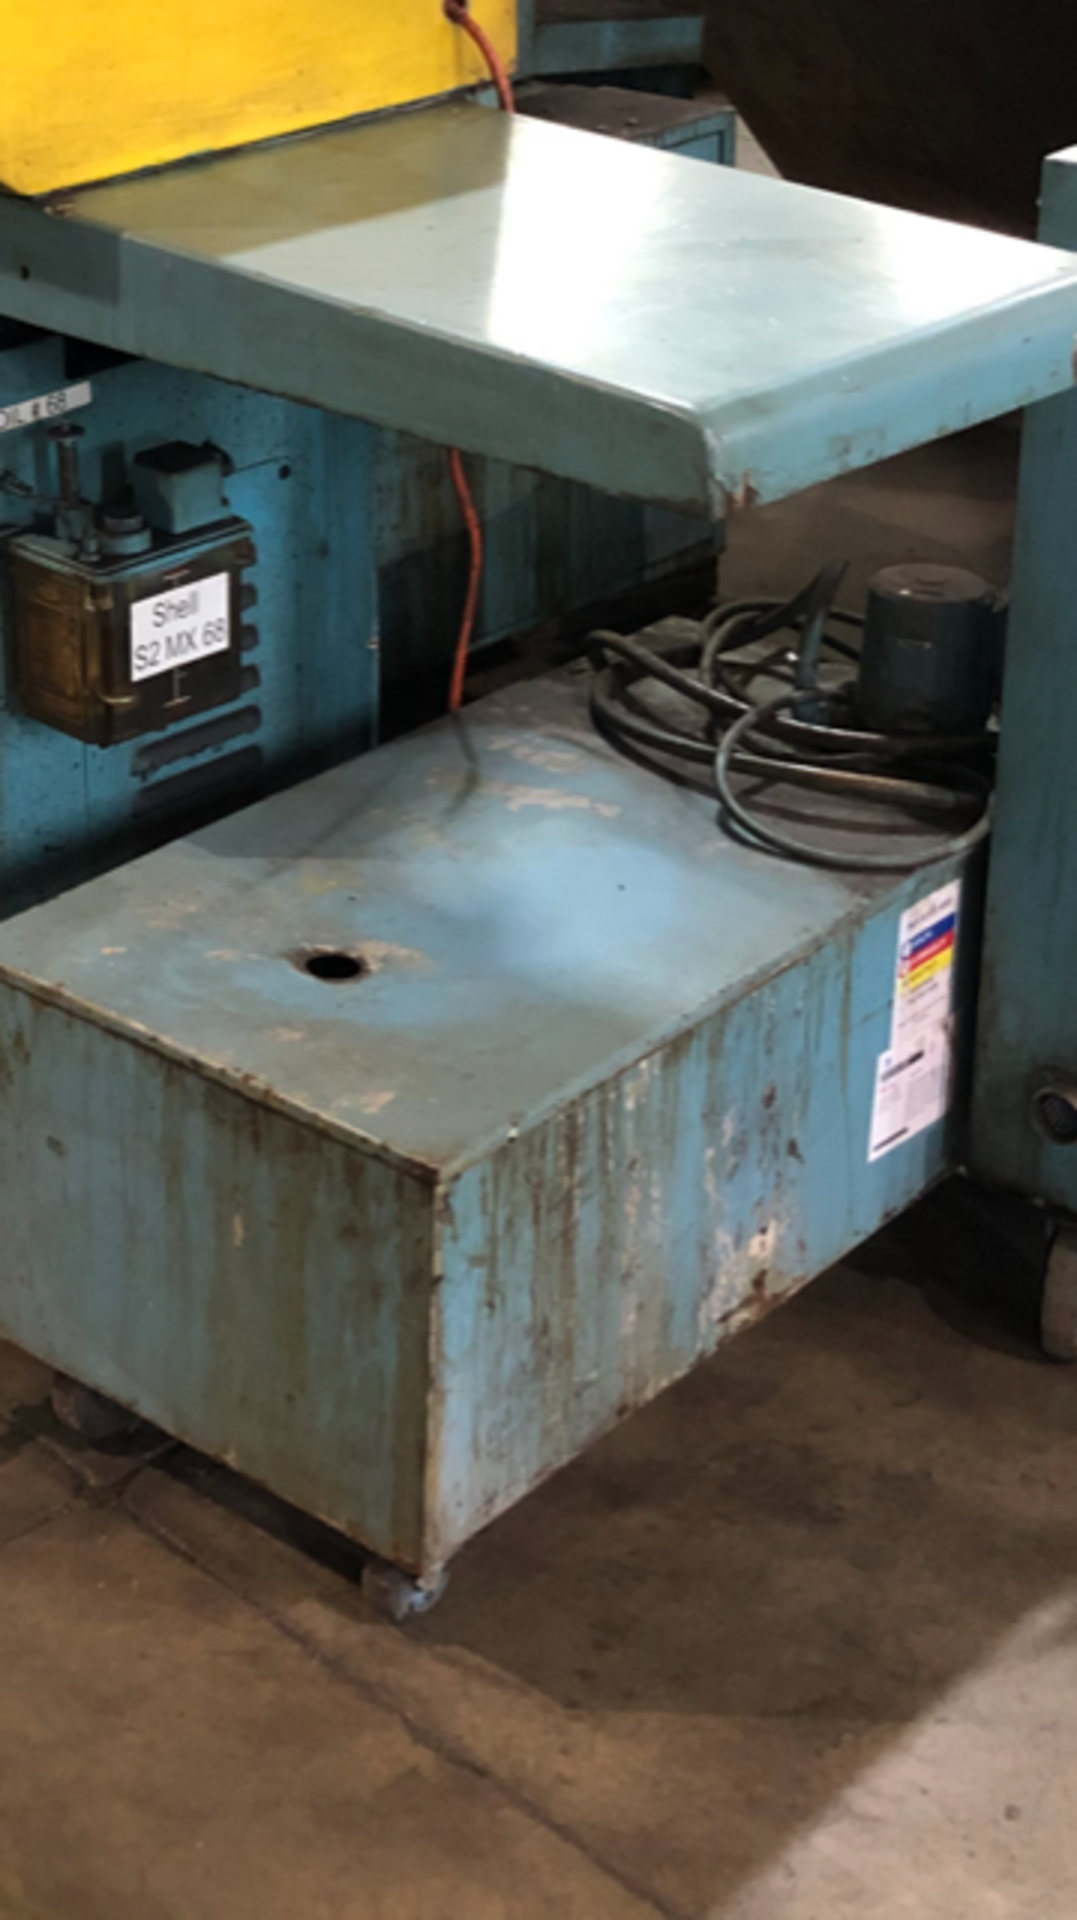 Kent KGS-410AHD SURFACE GRINDER - Image 14 of 16